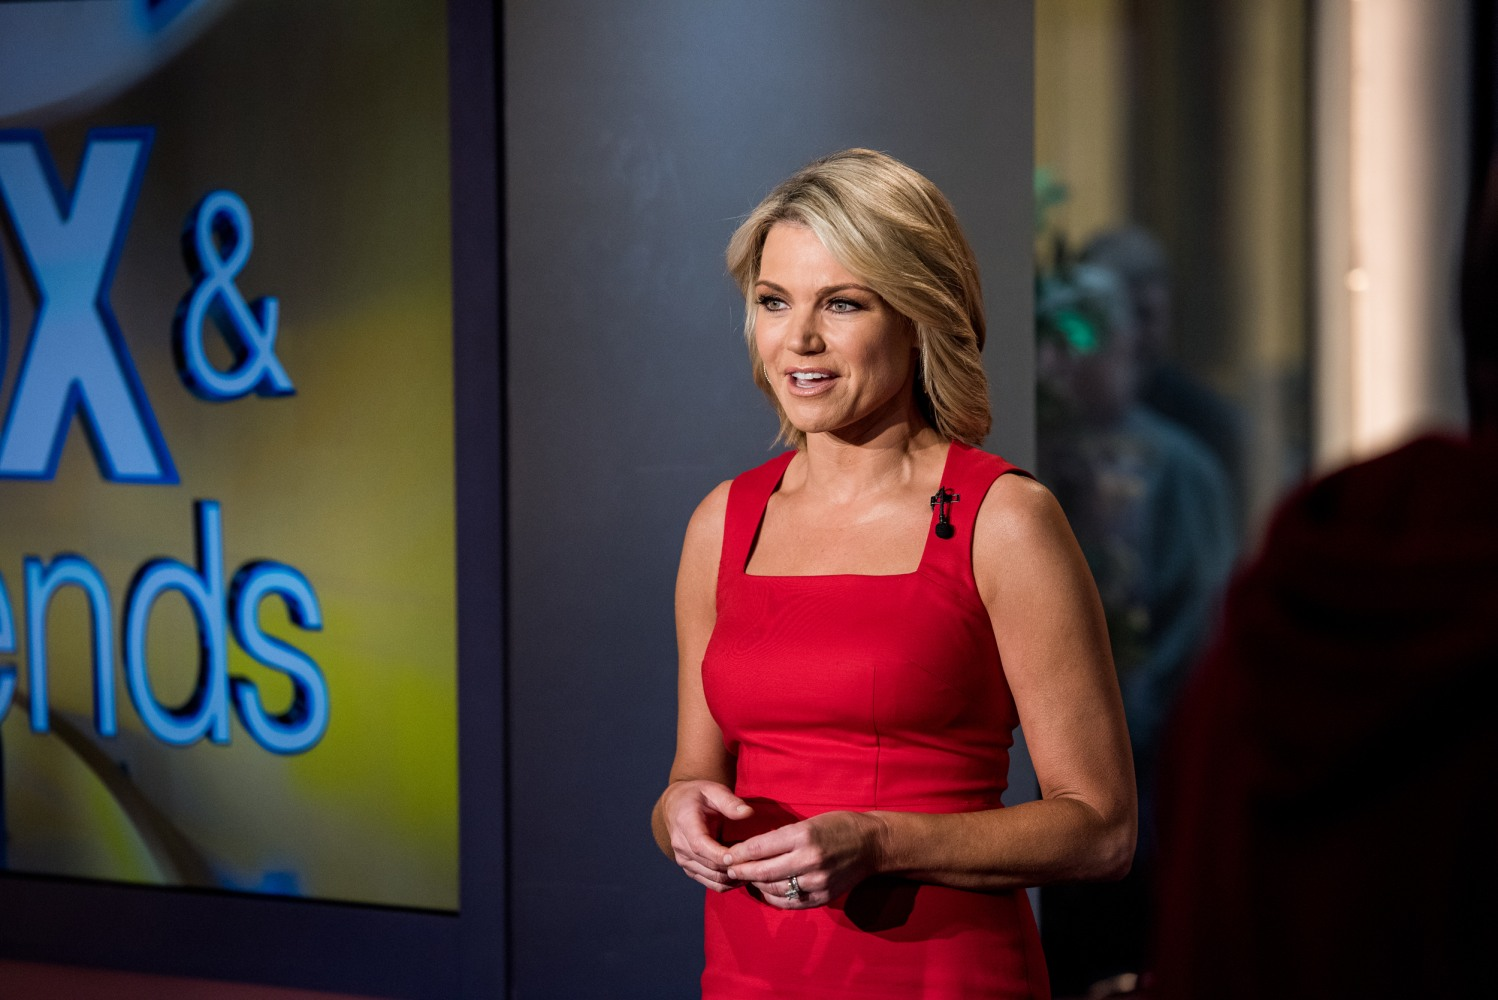 US State Department appoints Fox News anchor as spokeswoman